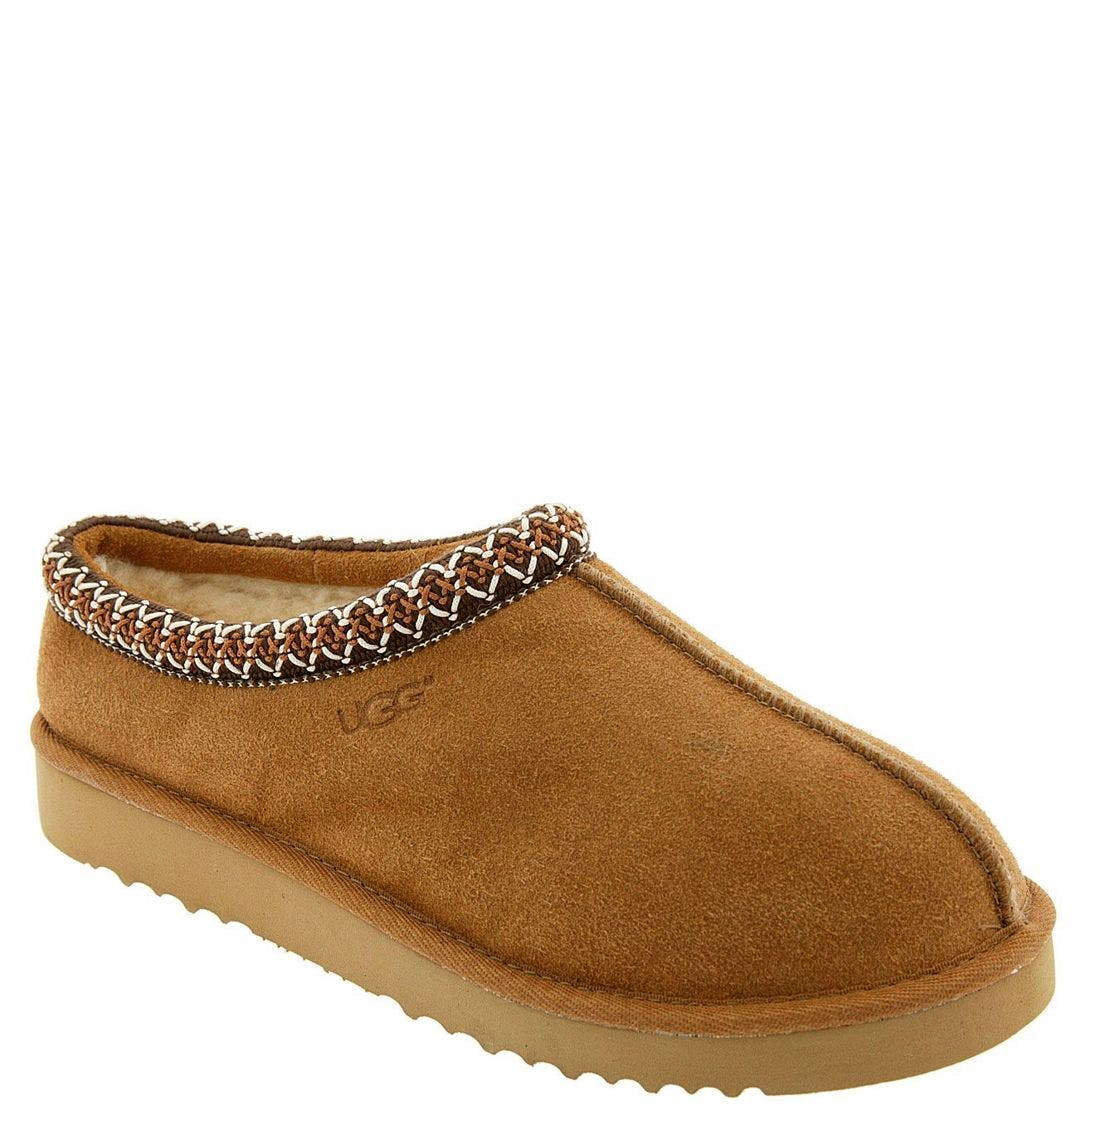 'Tasman' Slipper,                             Main thumbnail 1, color,                             Chestnut